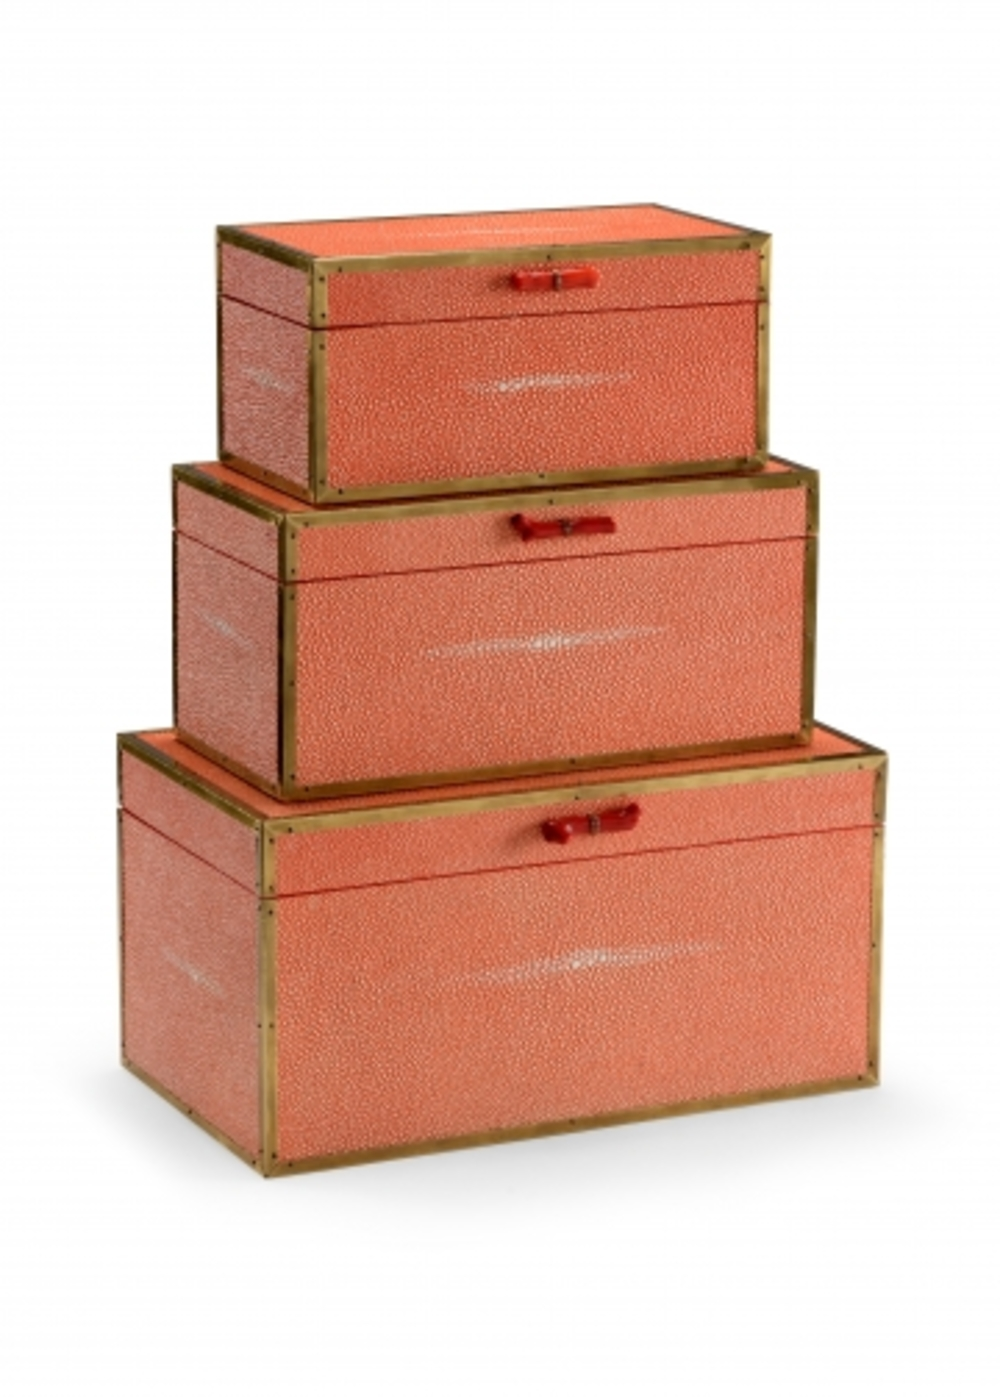 Wildwood Lamp - Cousteau Boxes, Coral